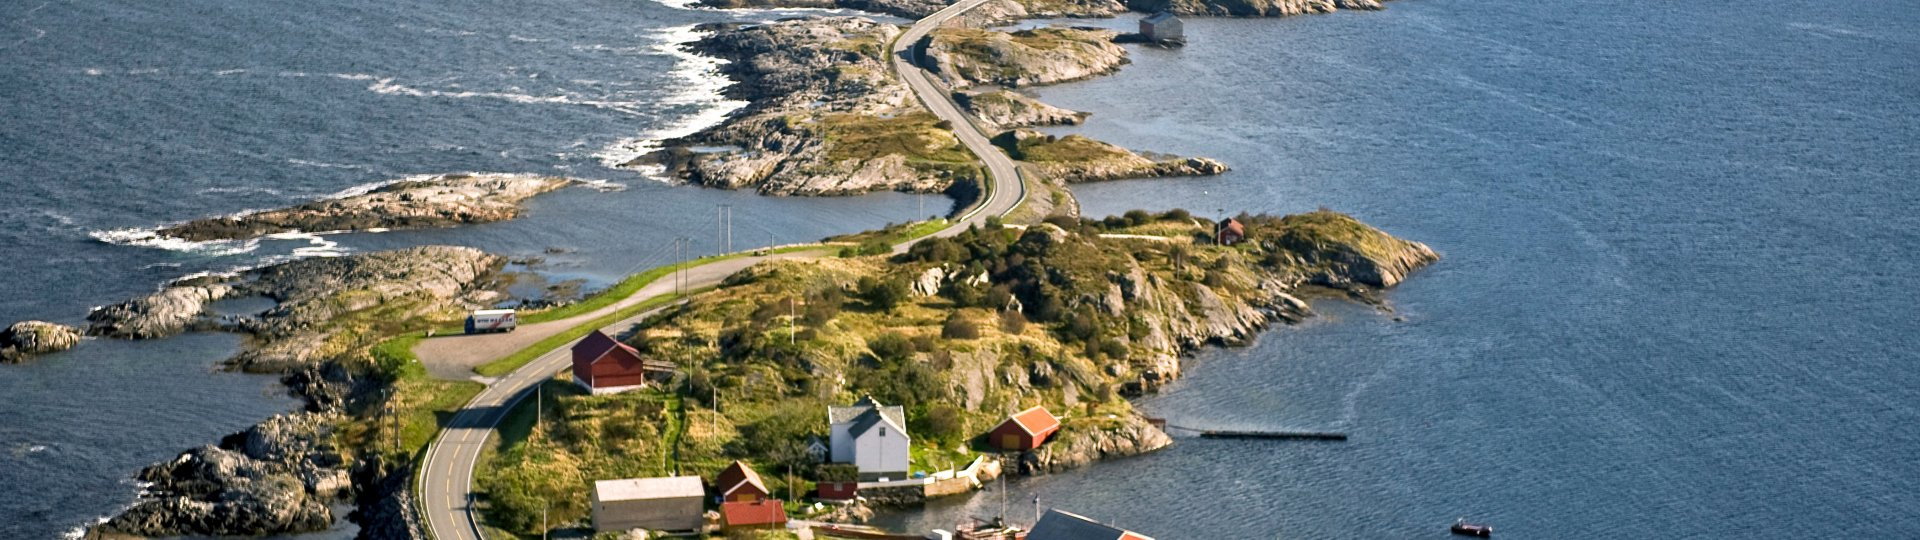 Atlantic Road Photo Terje Rakke Nordic Life Dkn